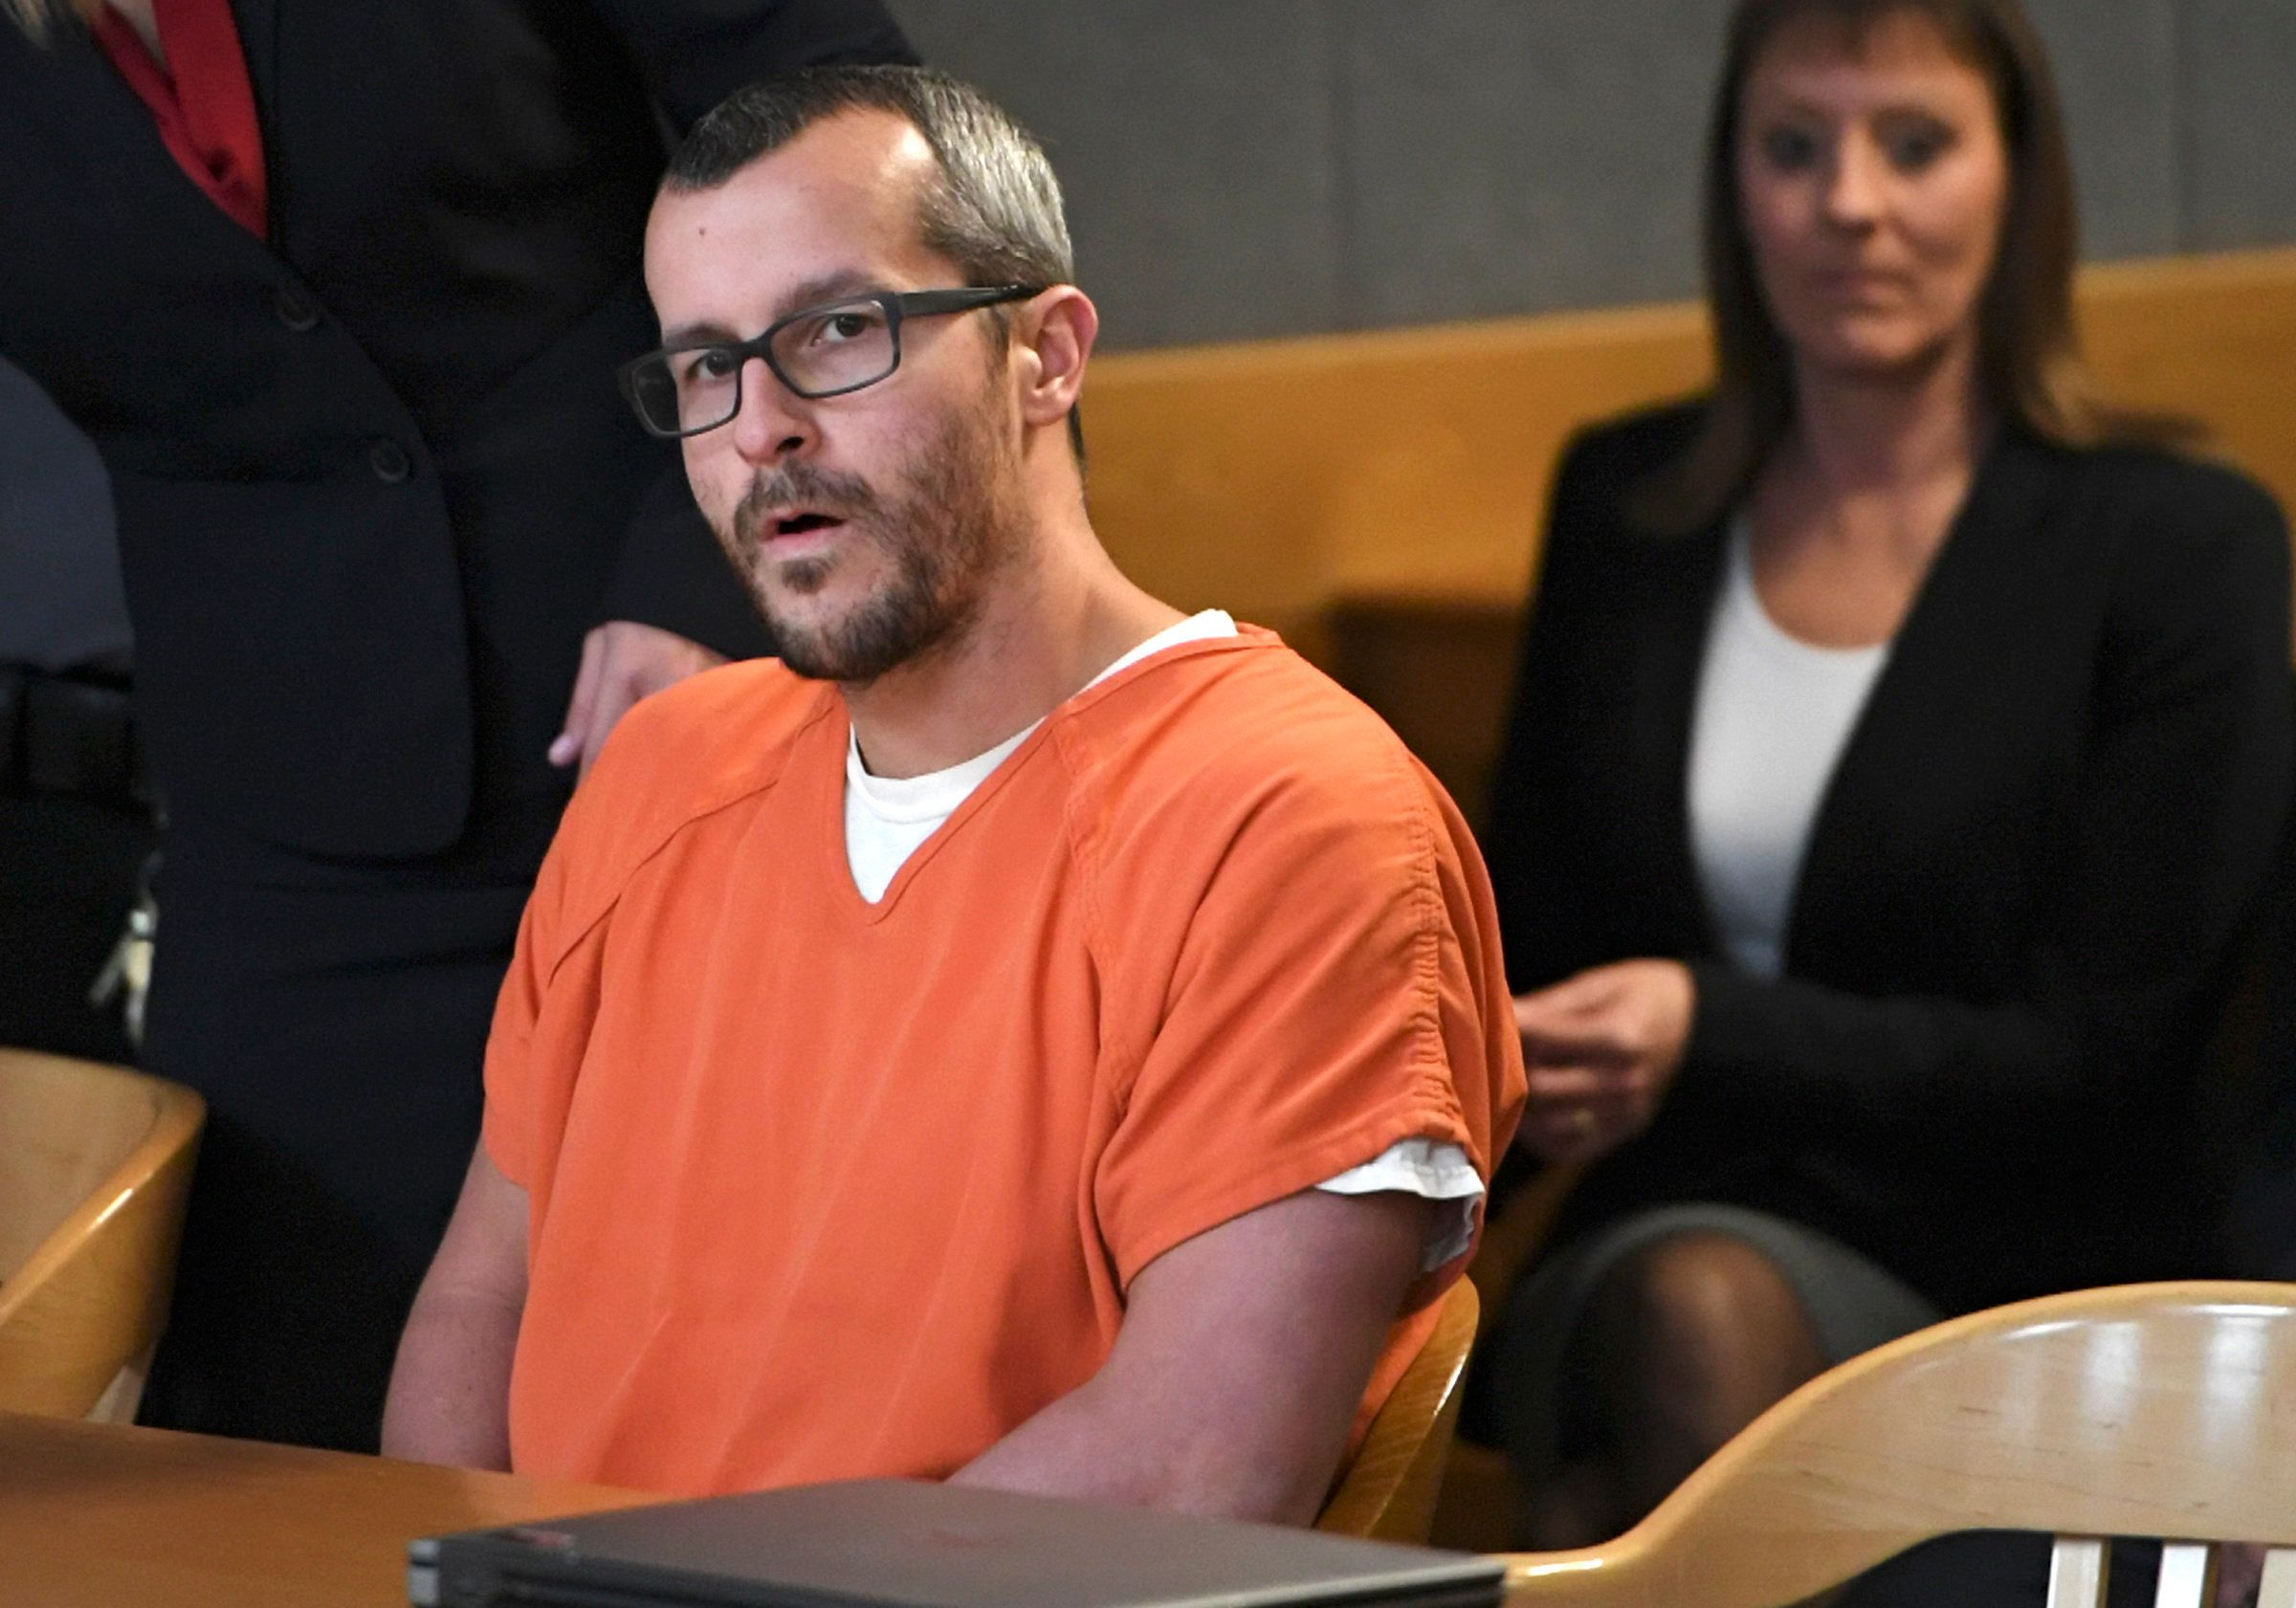 FILE - In this Nov. 19, 2018 file photo, Christopher Watts sits in court for his sentencing hearing at the Weld County Courthouse in Greeley, Colo. The family of a Colorado woman murdered by her husband has filed a wrongful death lawsuit, seeking financial damages. Christopher Watts pleaded guilty this month to killing his pregnant wife and their two young daughters and was sentenced to life in prison. (RJ Sangosti/The Denver Post via AP, Pool, File)